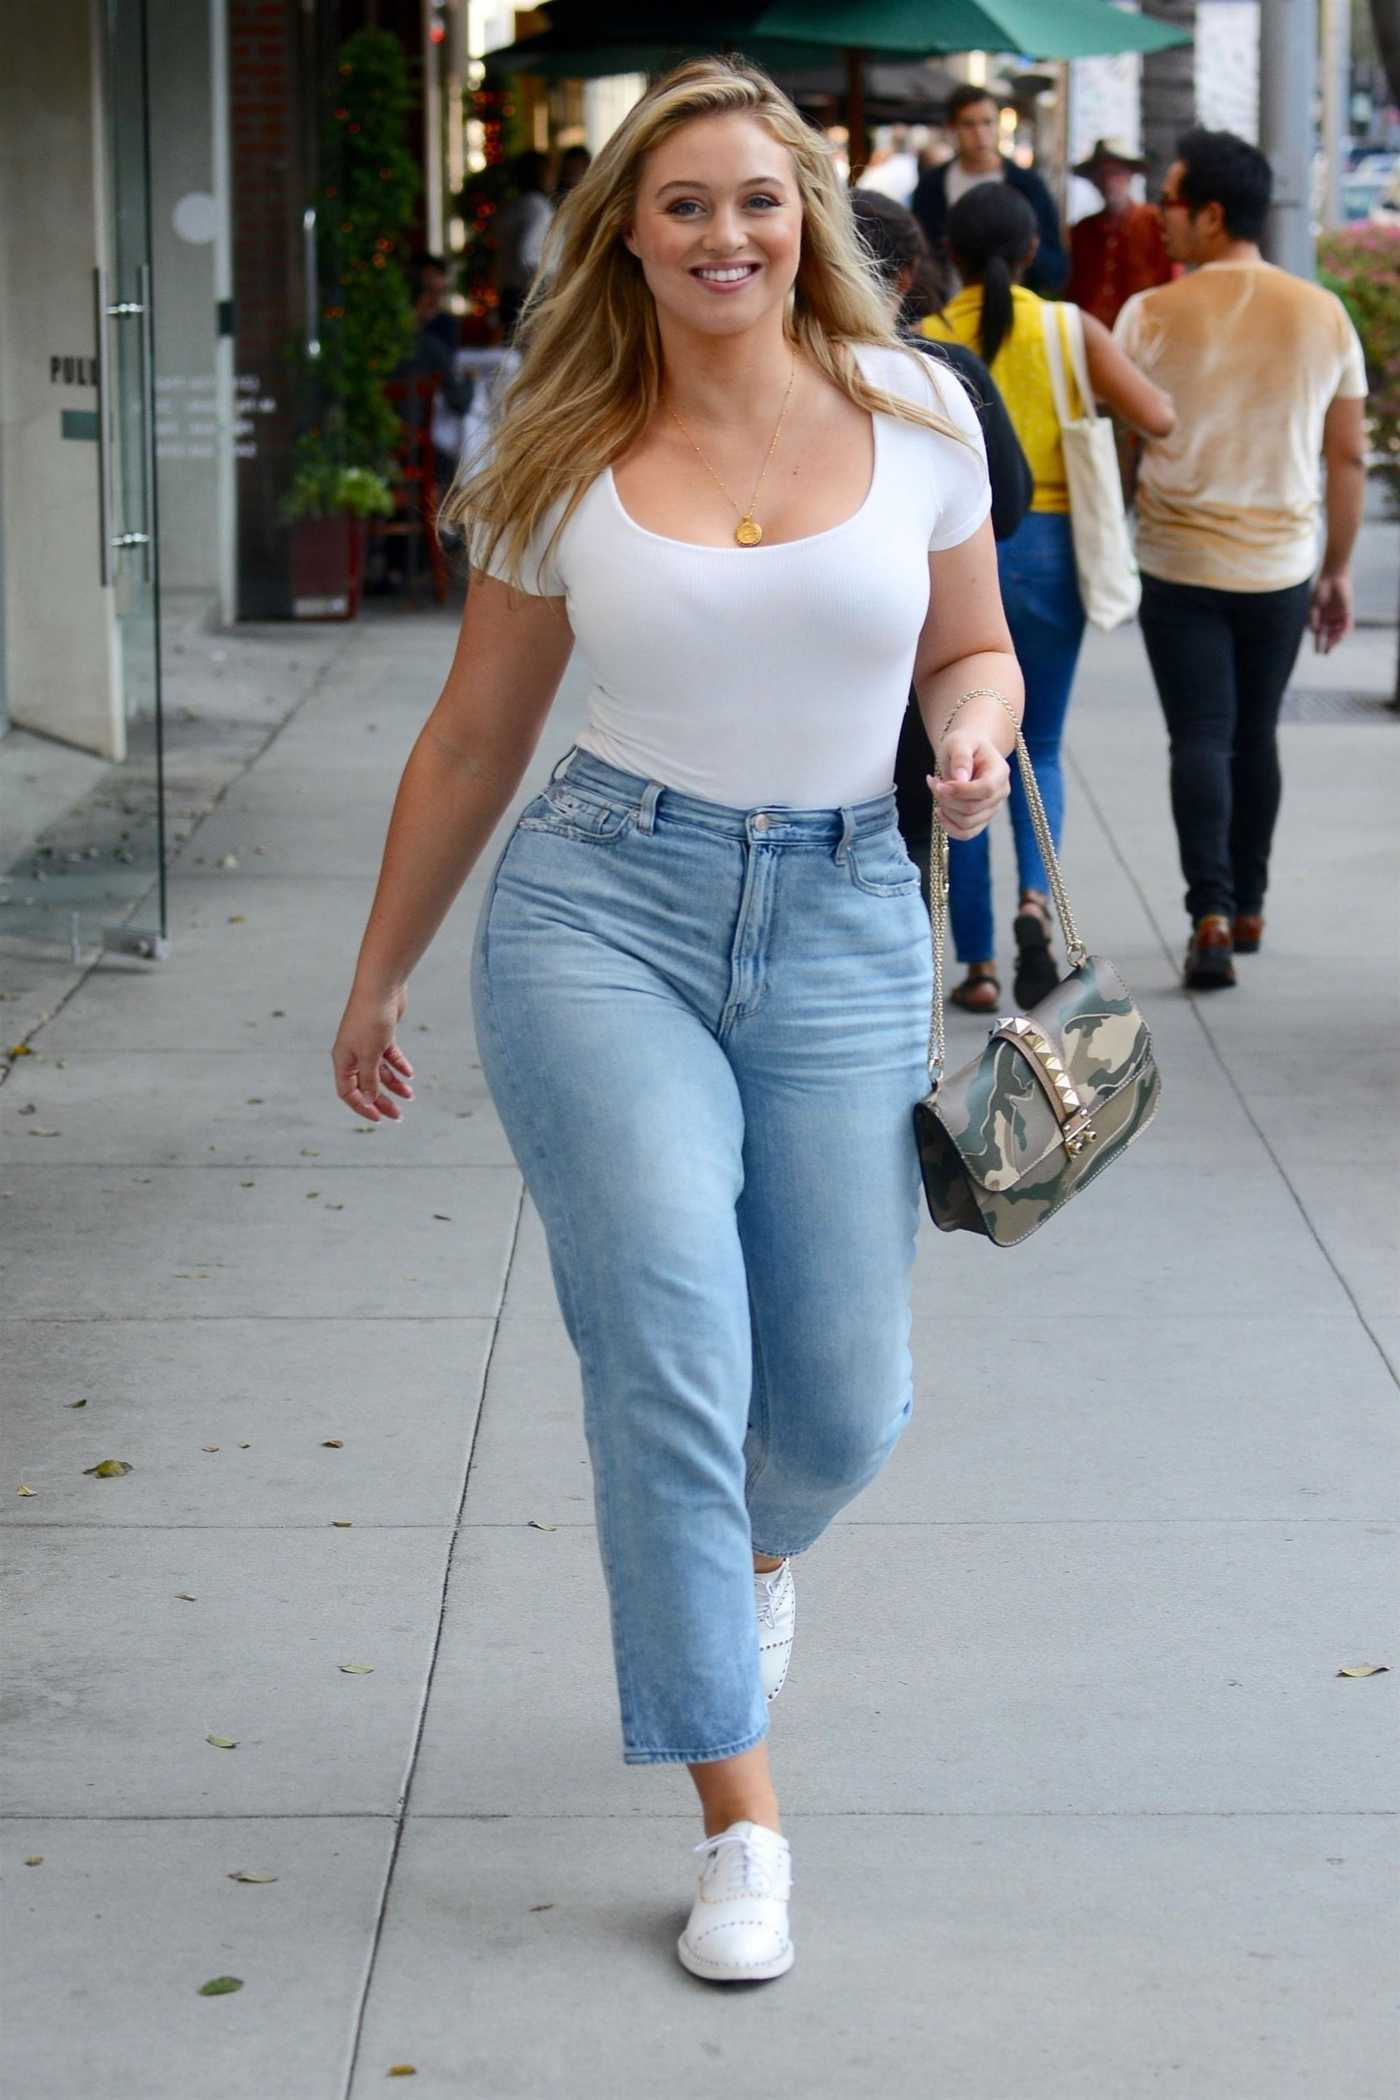 Iskra Lawrence in a Blue Jeans Out for Shopping in Beverly Hills 11/16/2018